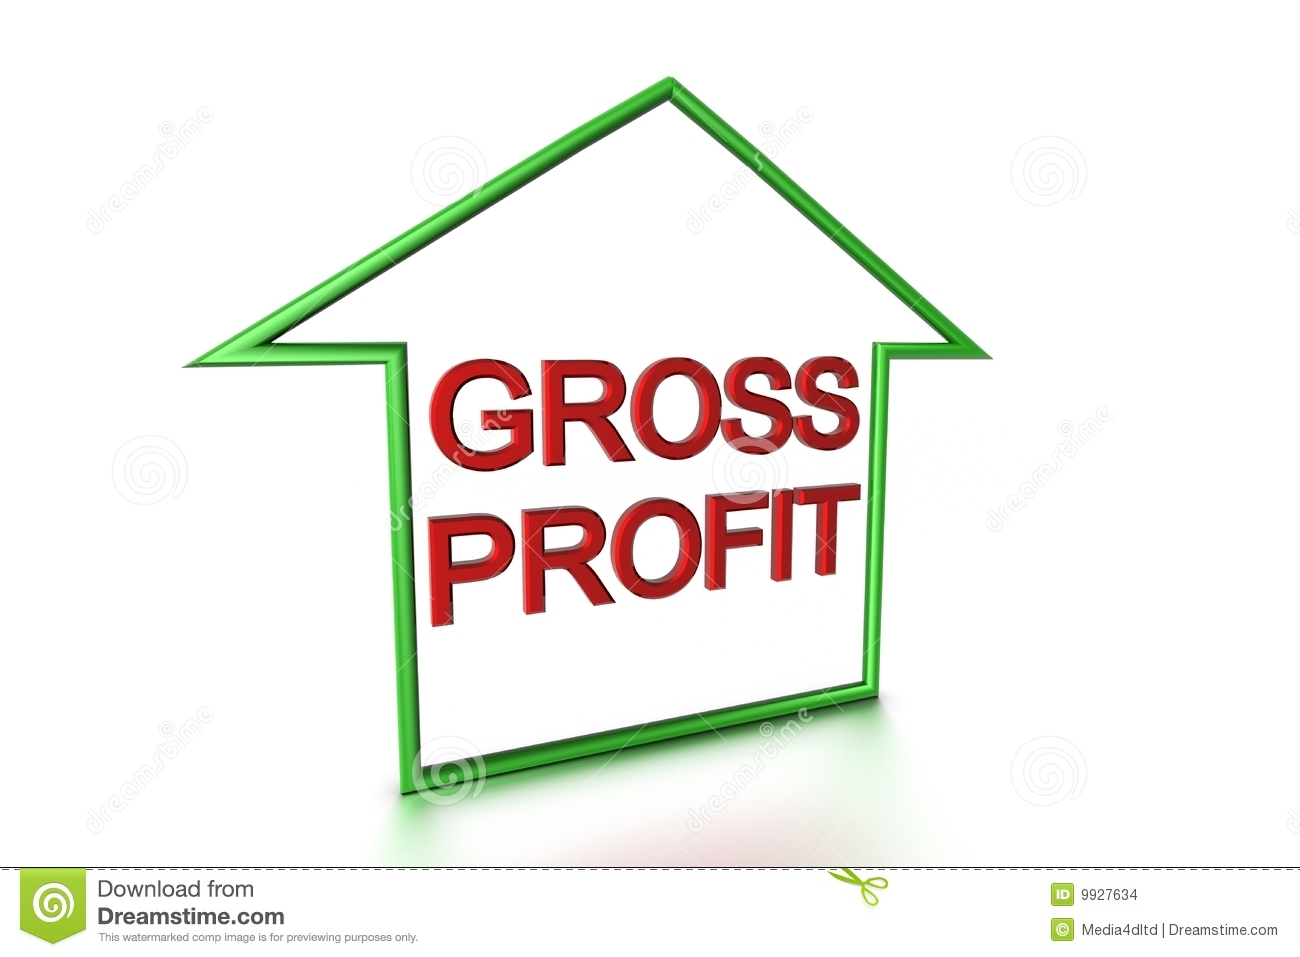 understanding the concept behind the gross profit margin What is gross profit - definition, formula & calculation know and understand not only how gross profit is gross profit - definition, formula & calculation.